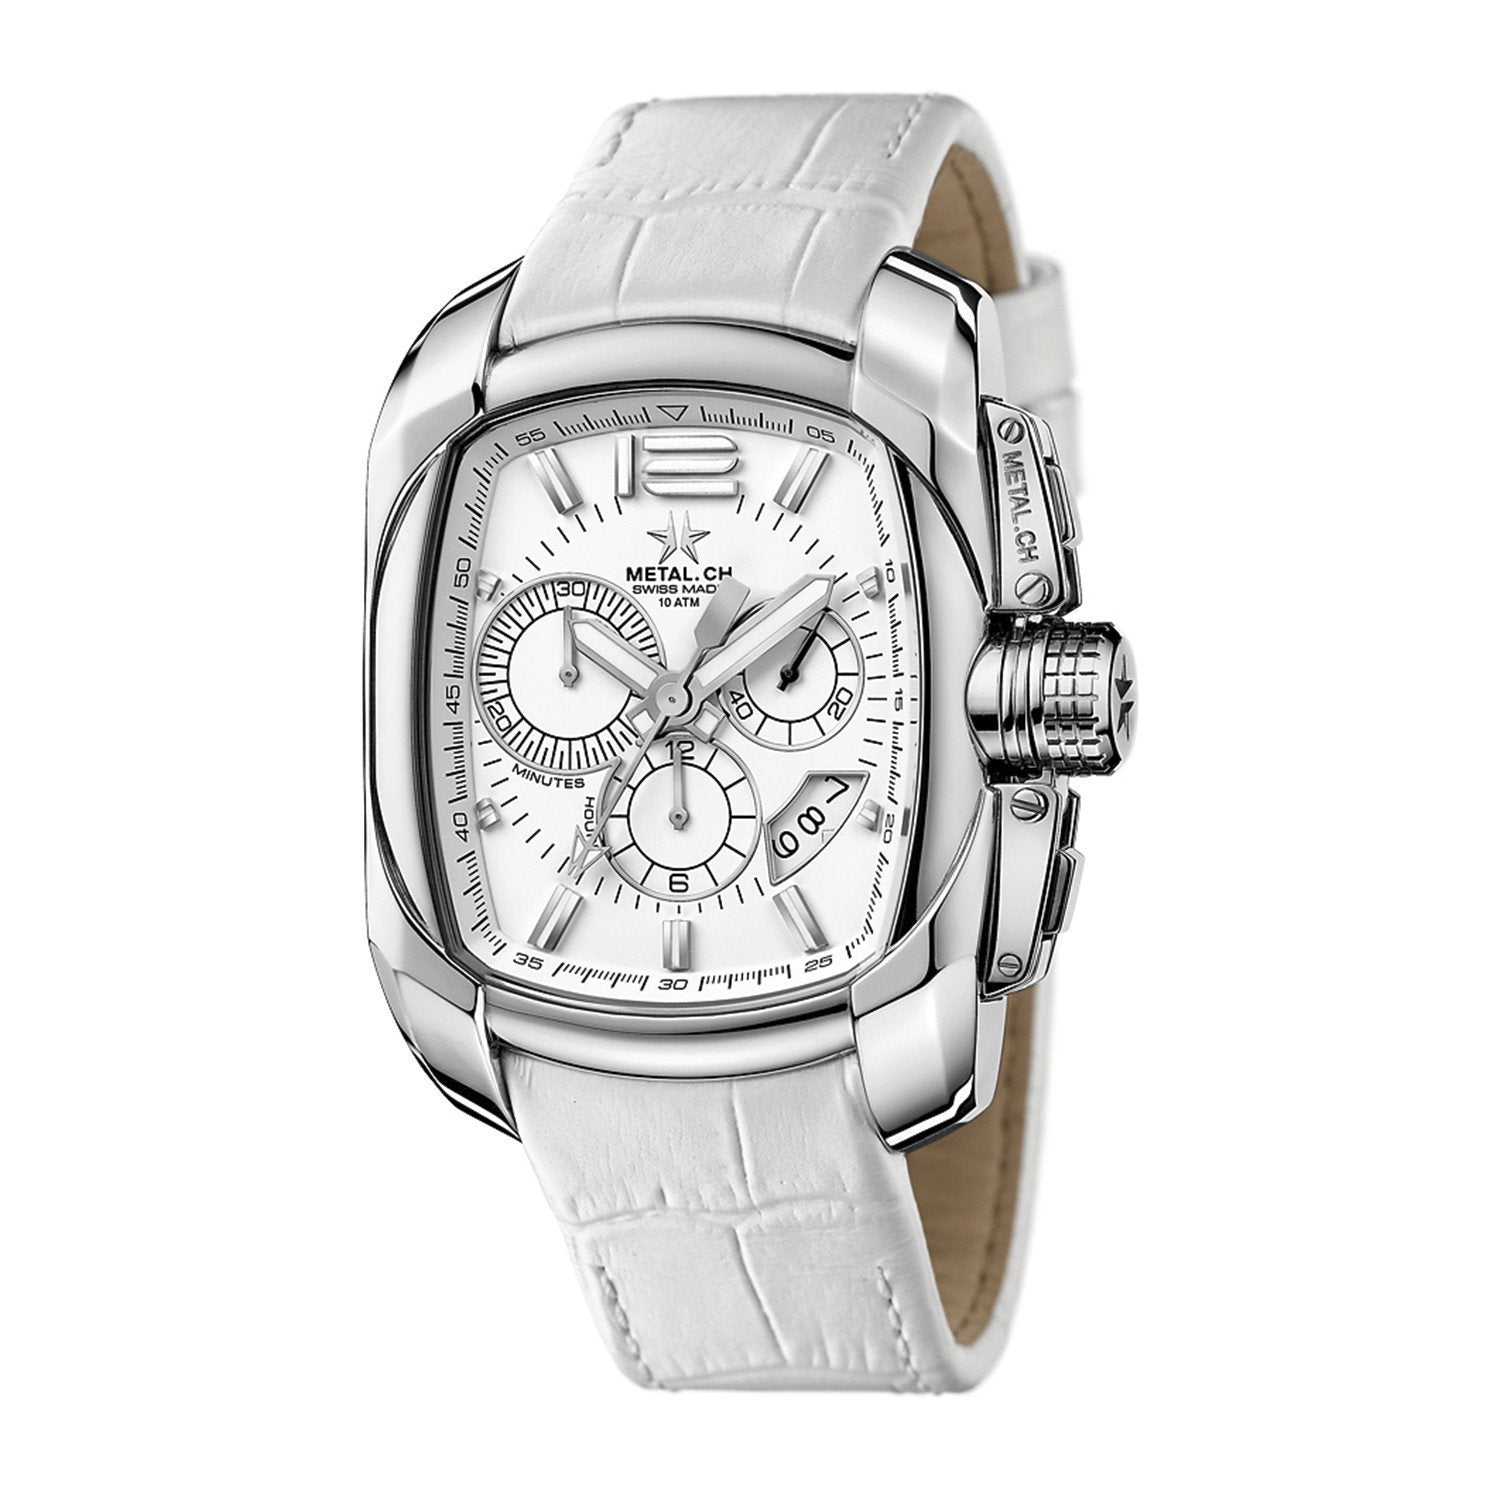 Metal.CH Club Chronograph Date White Steel - Watches & Crystals